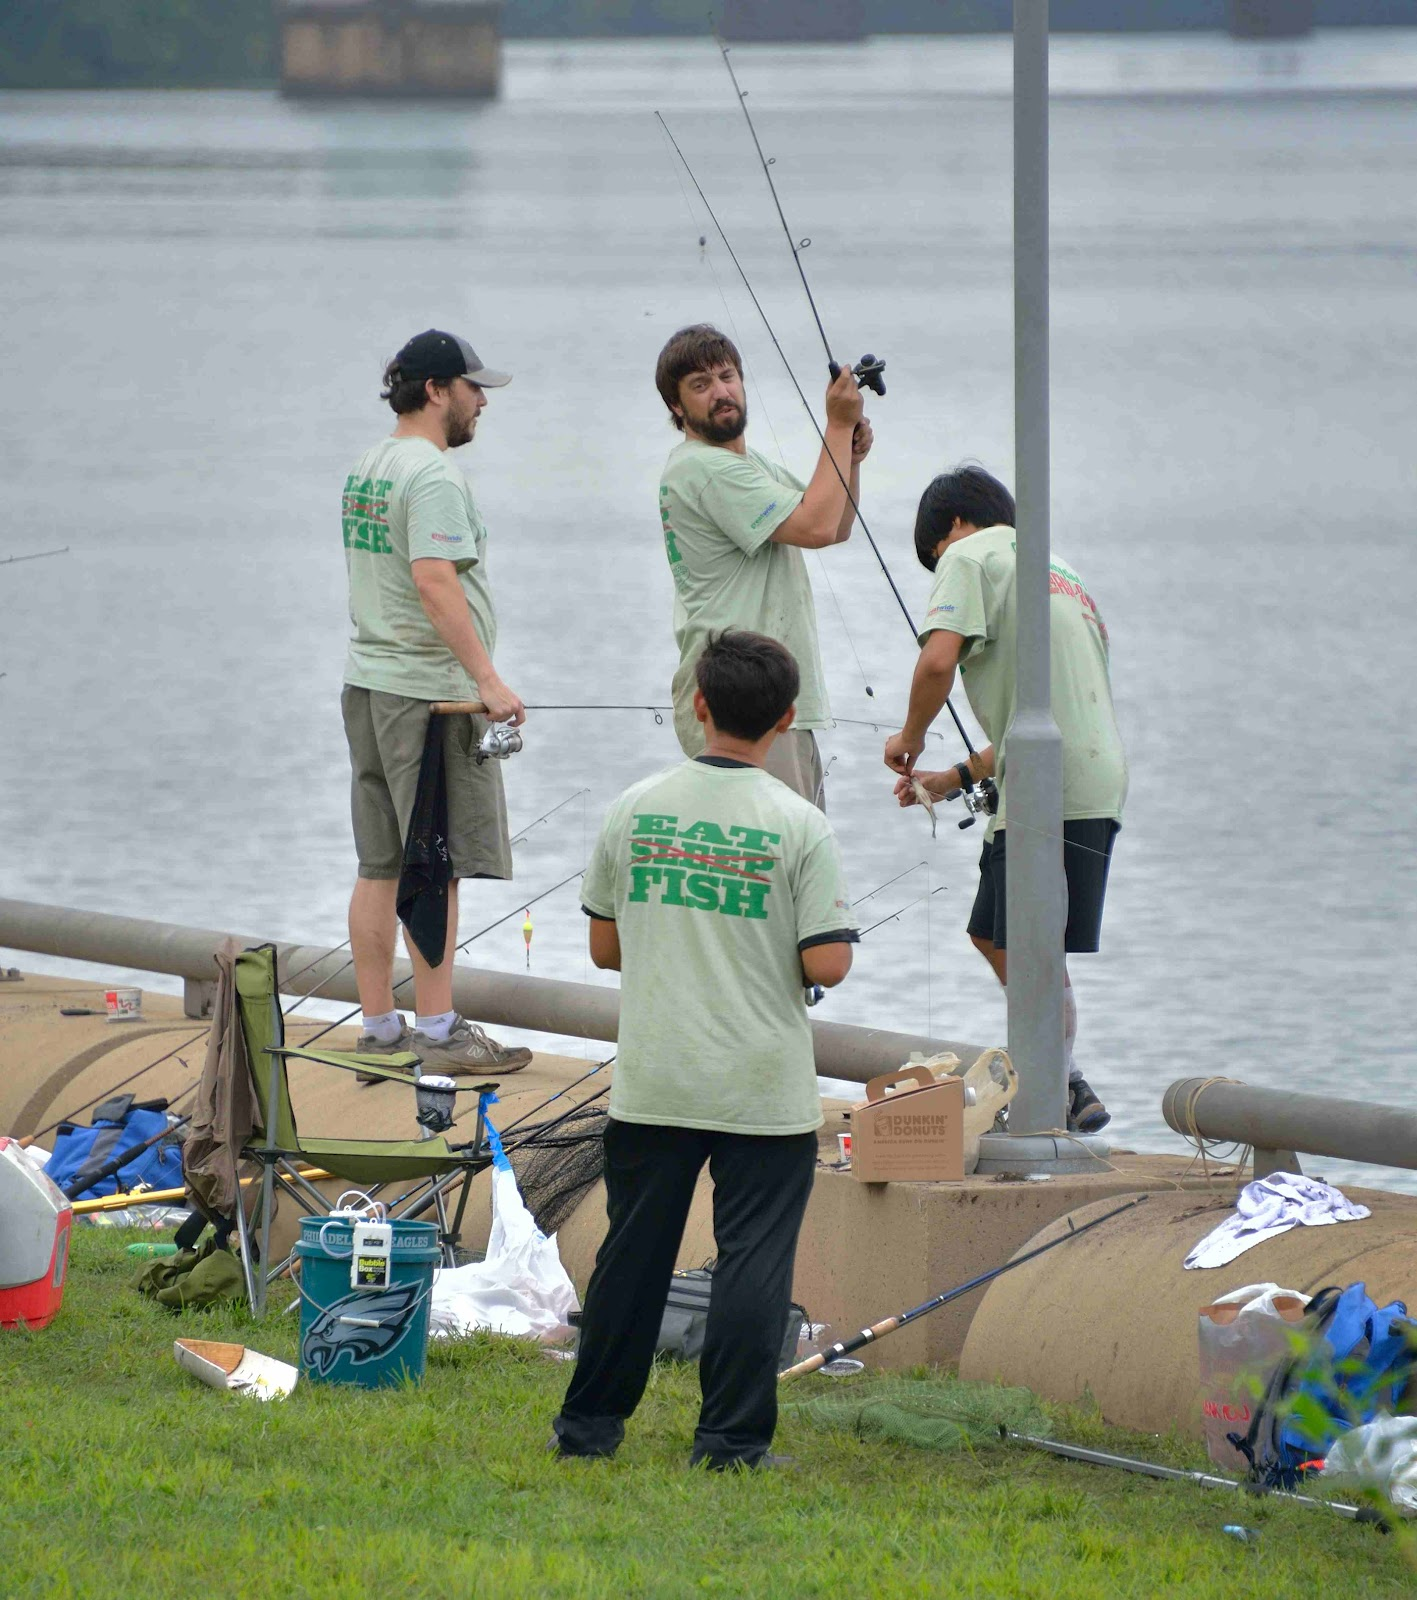 Extreme philly fishing free event 2013 philly fun for Extreme philly fishing